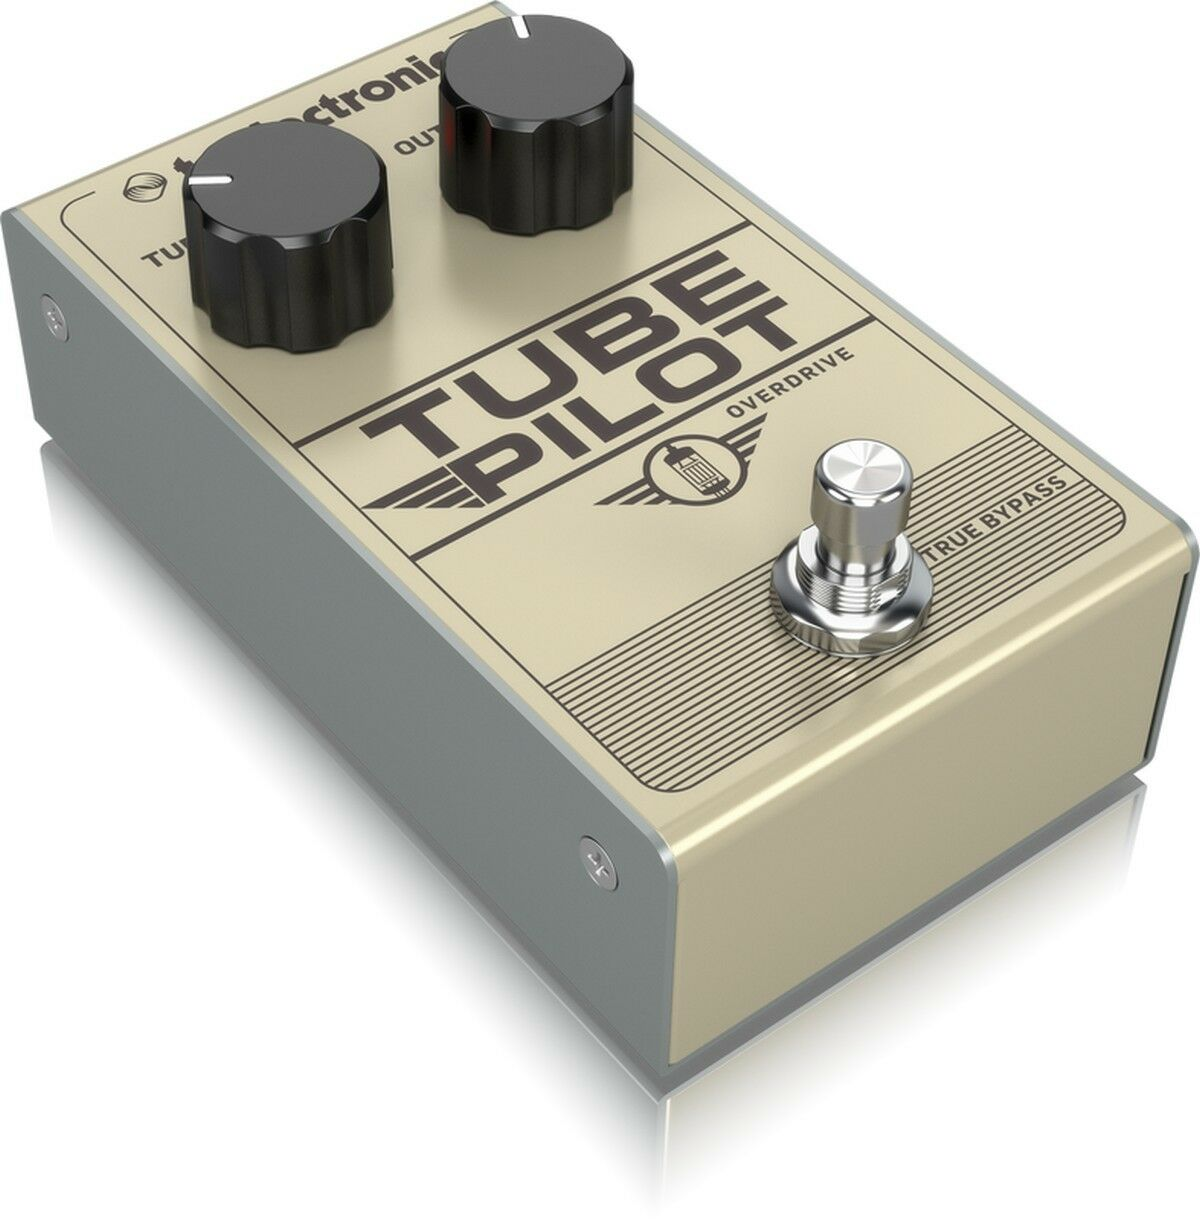 TC ELECTRONIC ROHR PILOT OVERDRIVE WIRKUNG OVERDRIVE AMP MIT REAL 12AXT